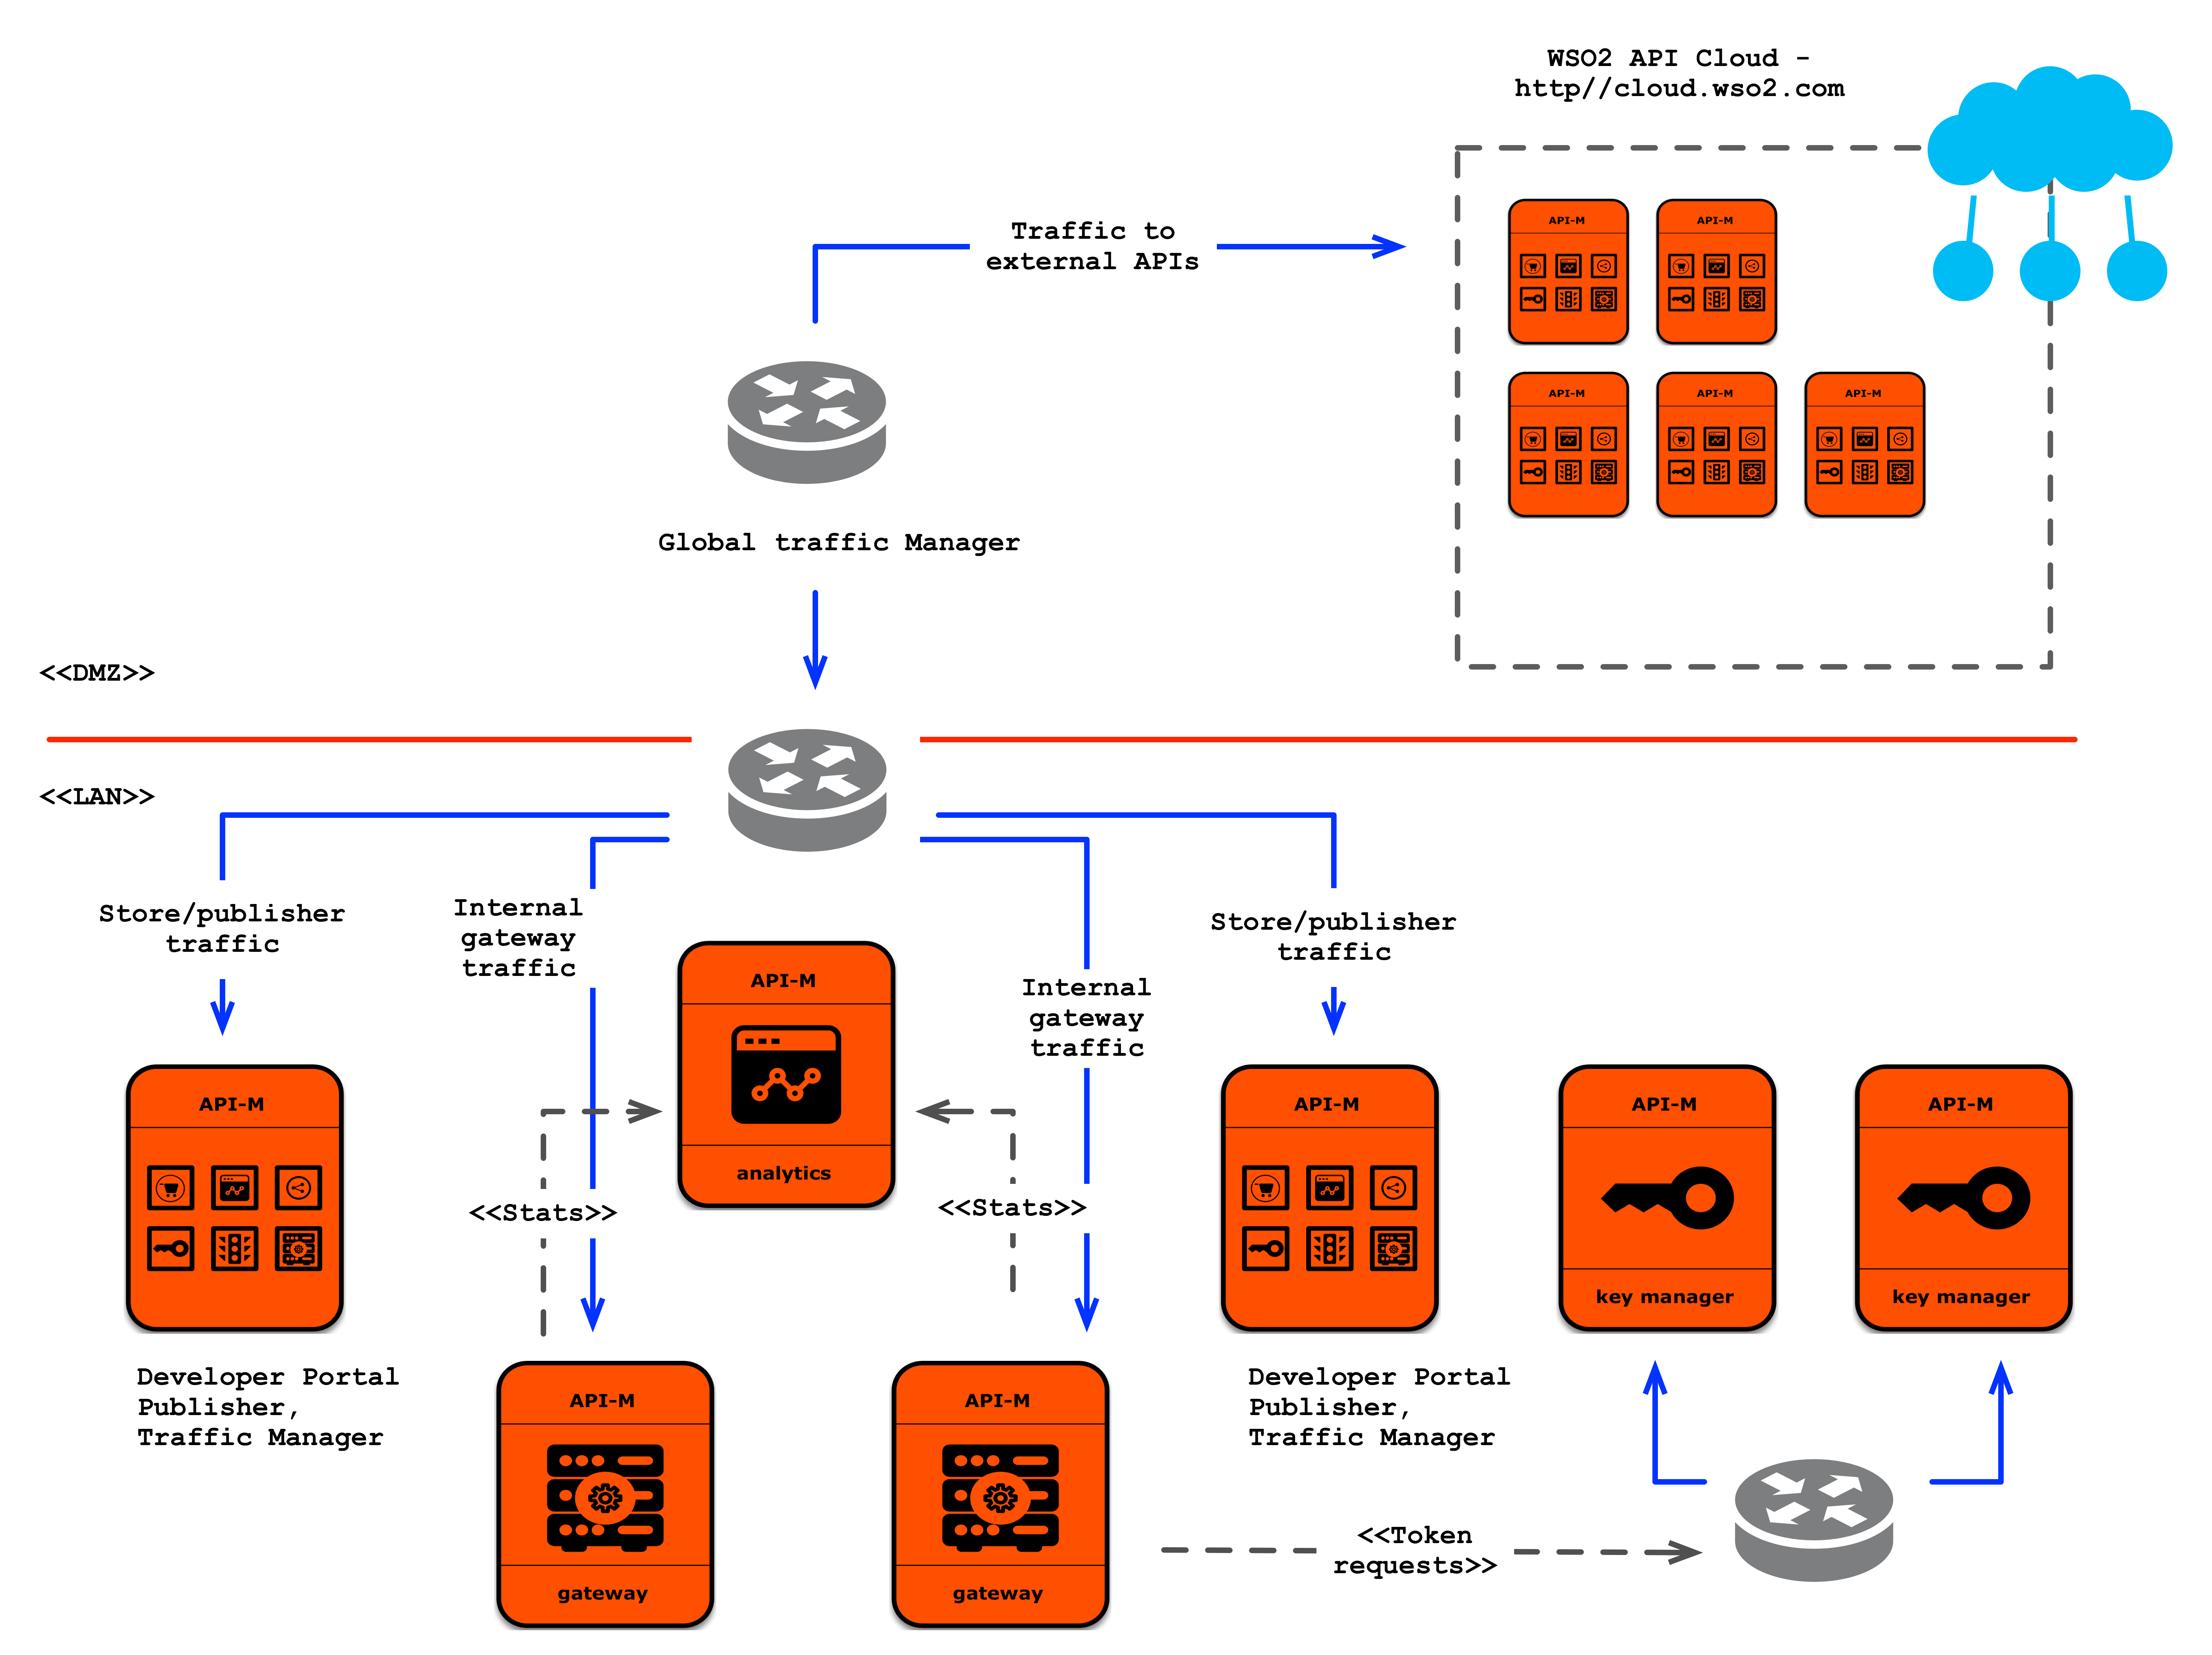 Internal and external (public and private cloud) API-M